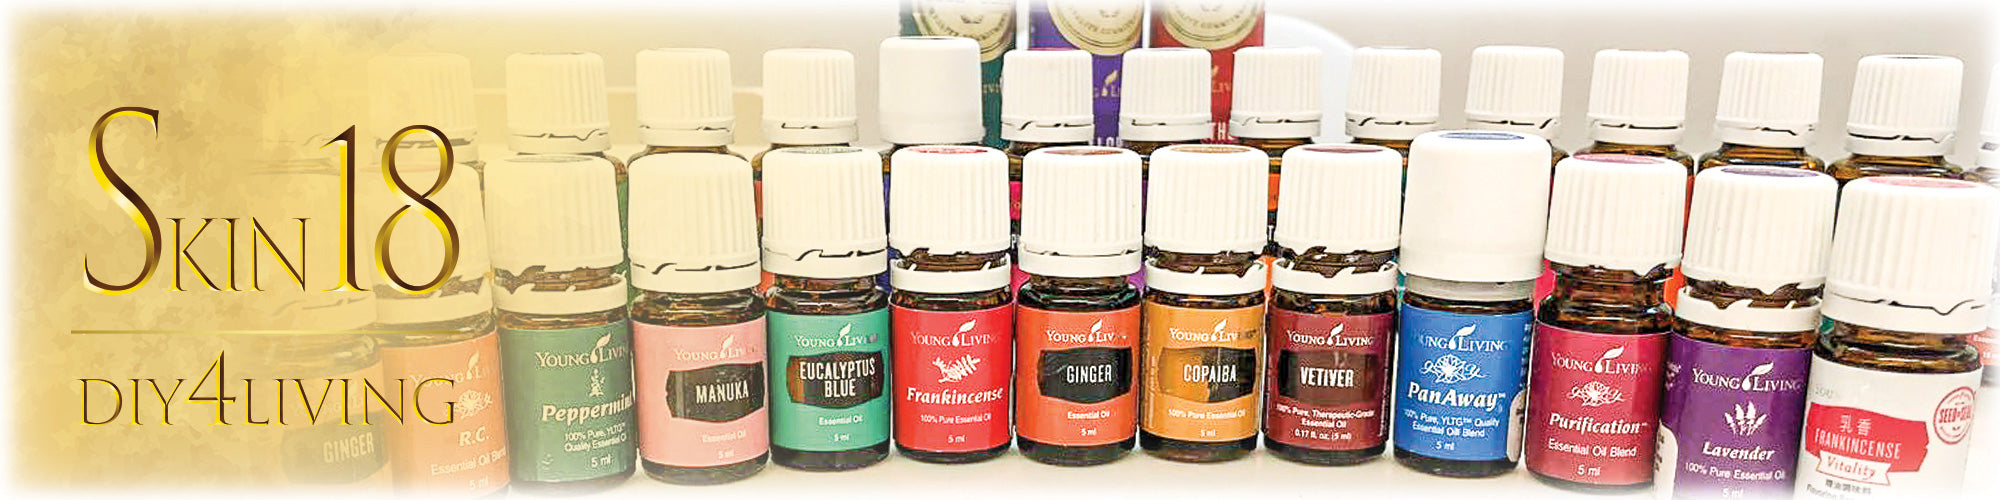 D.I.Y Tips with essential oils | DIY4Living @Skin18